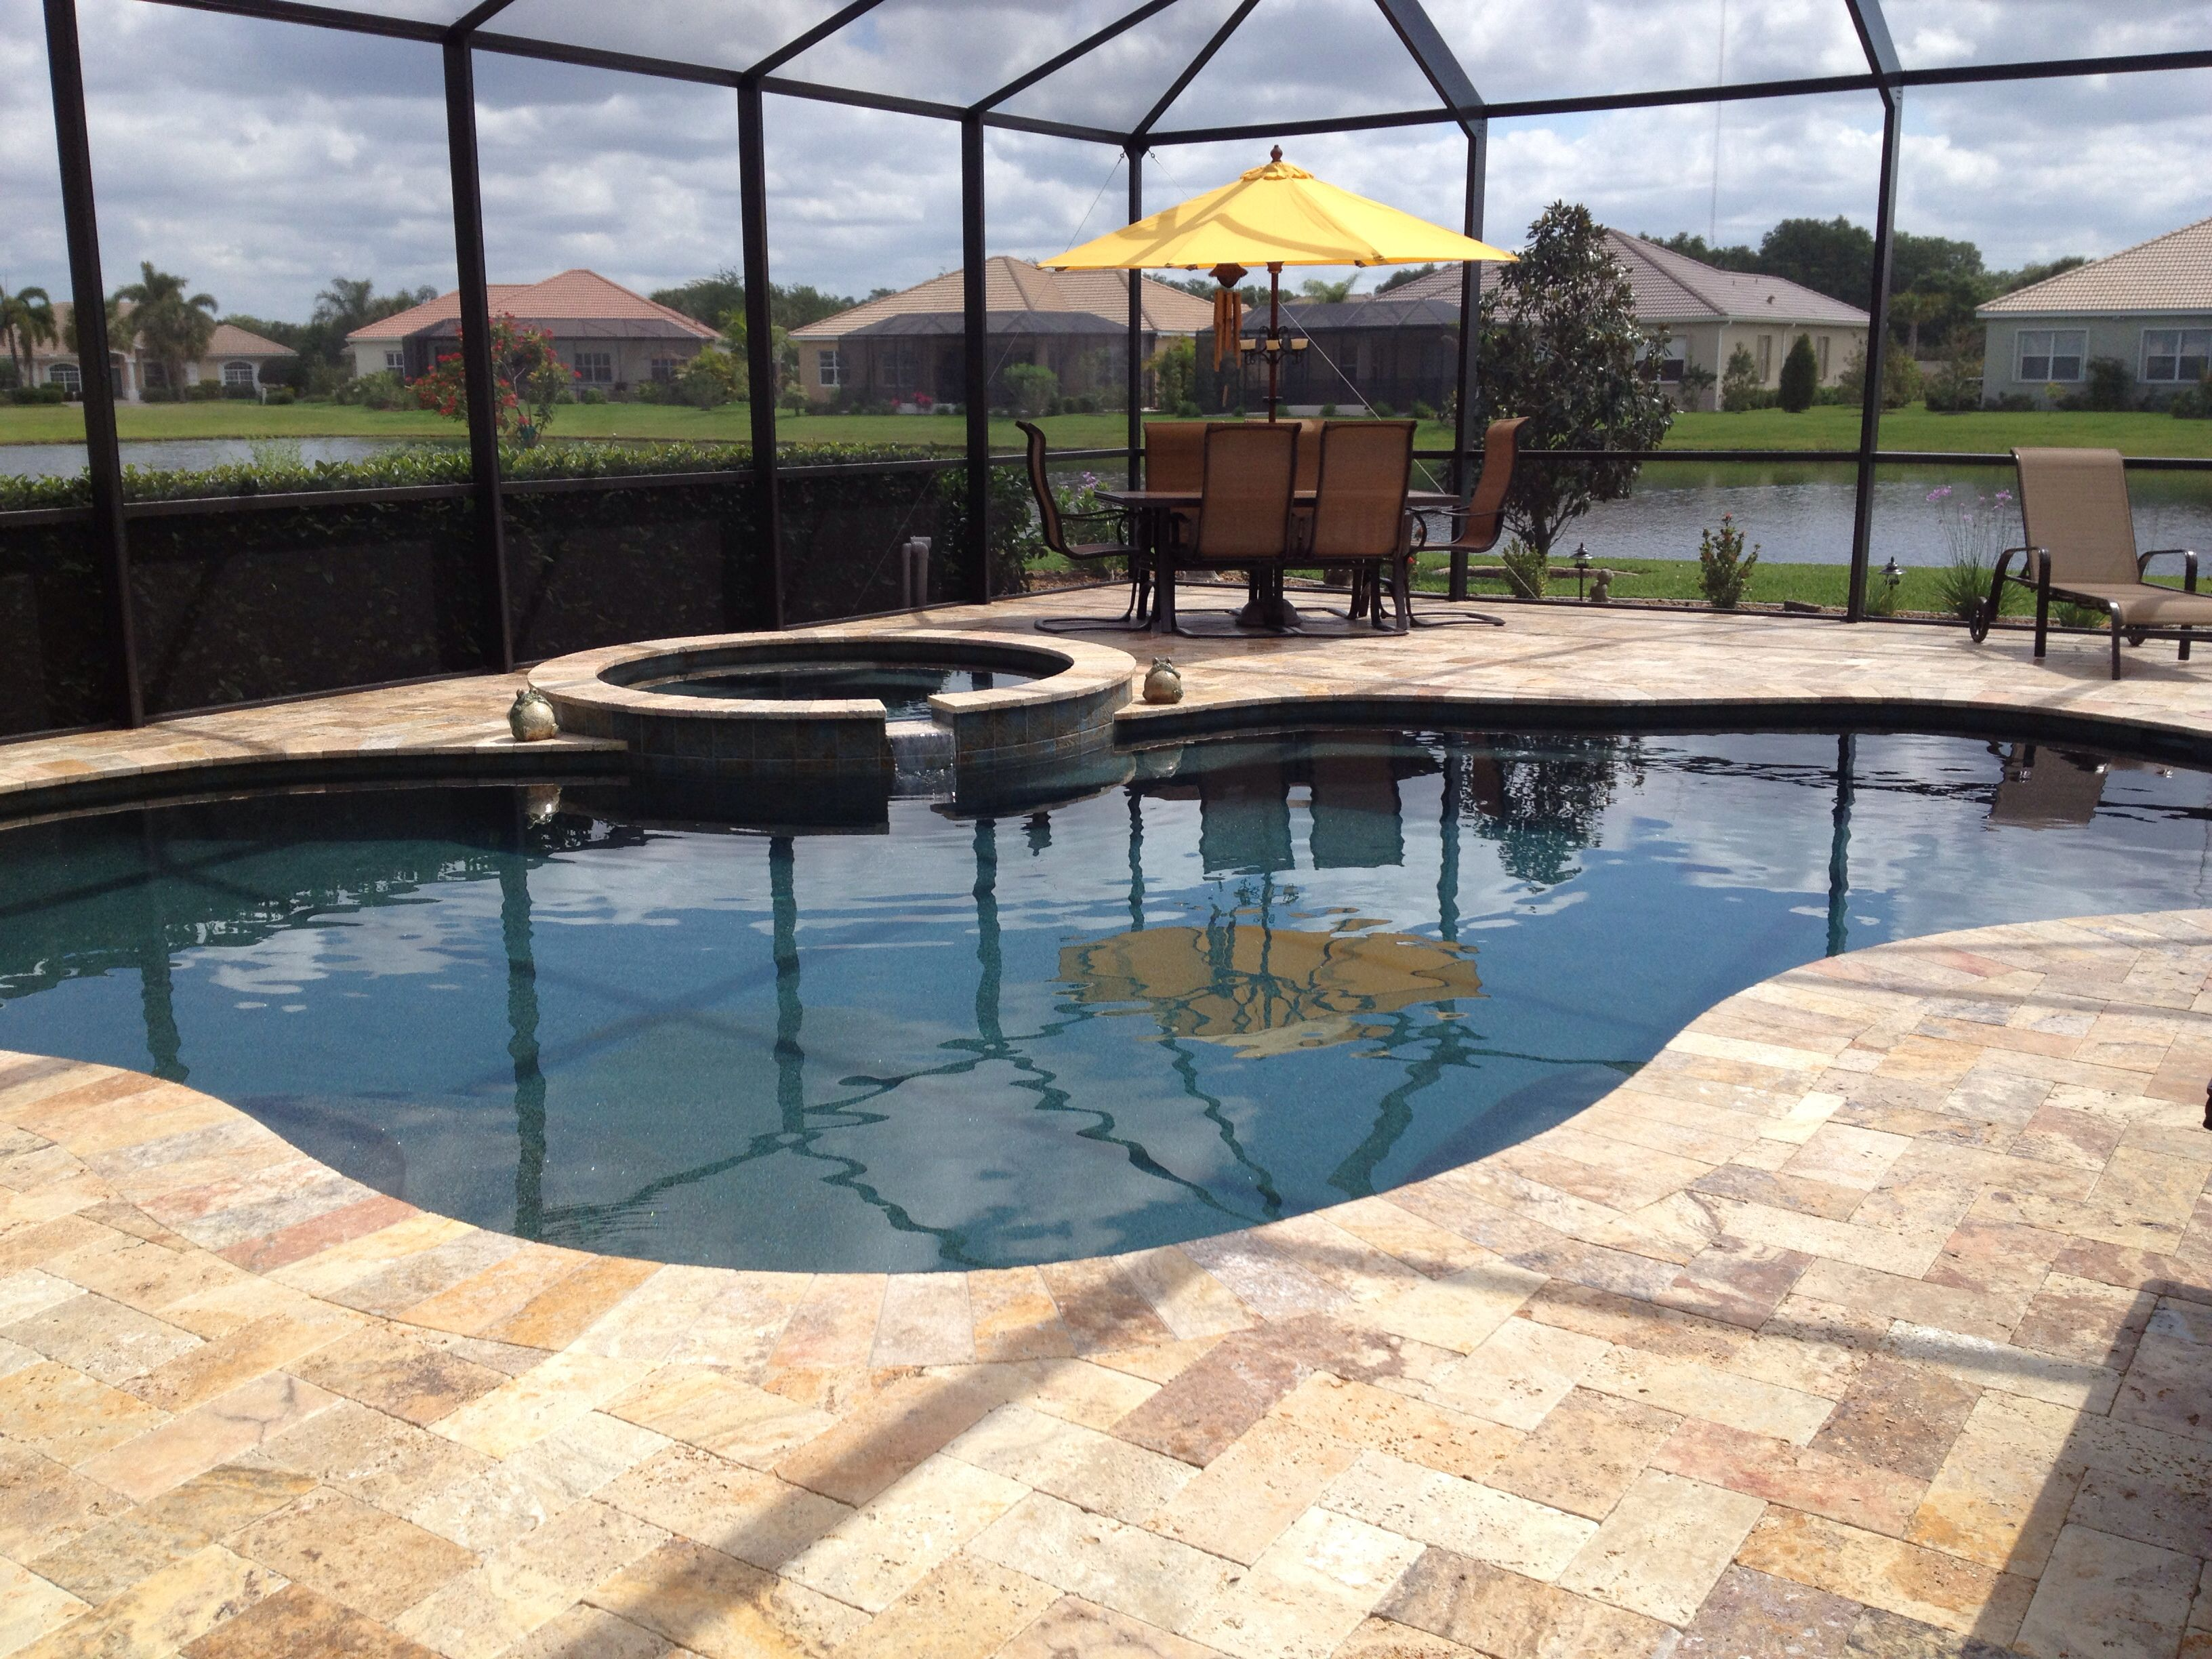 Pool And Spa Renovation With Autumn Leaves Travertine Deck And